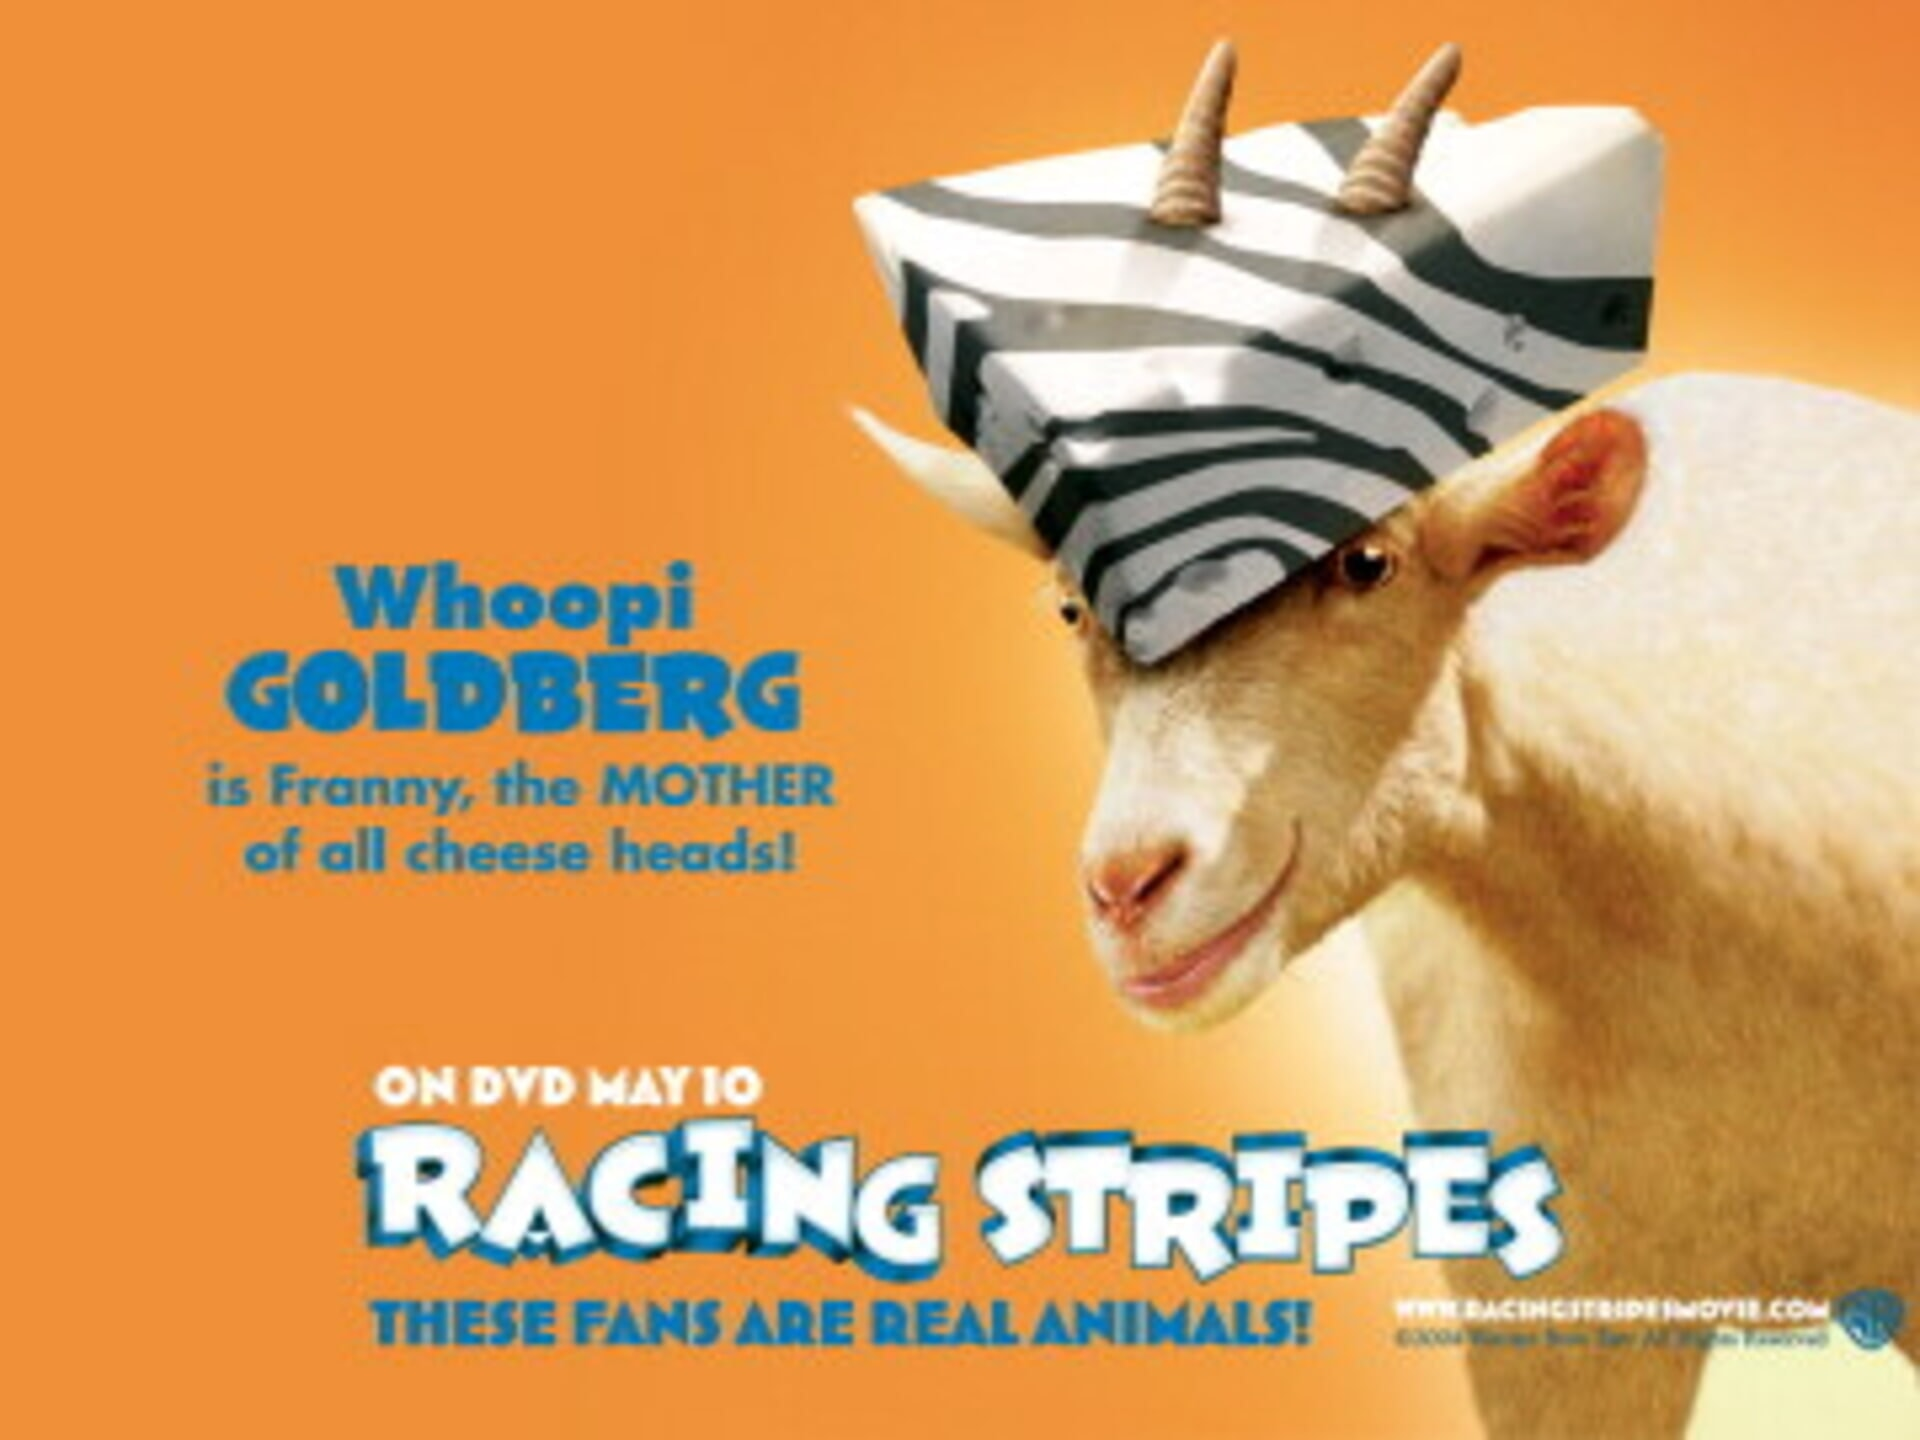 Racing Stripes - Image 68